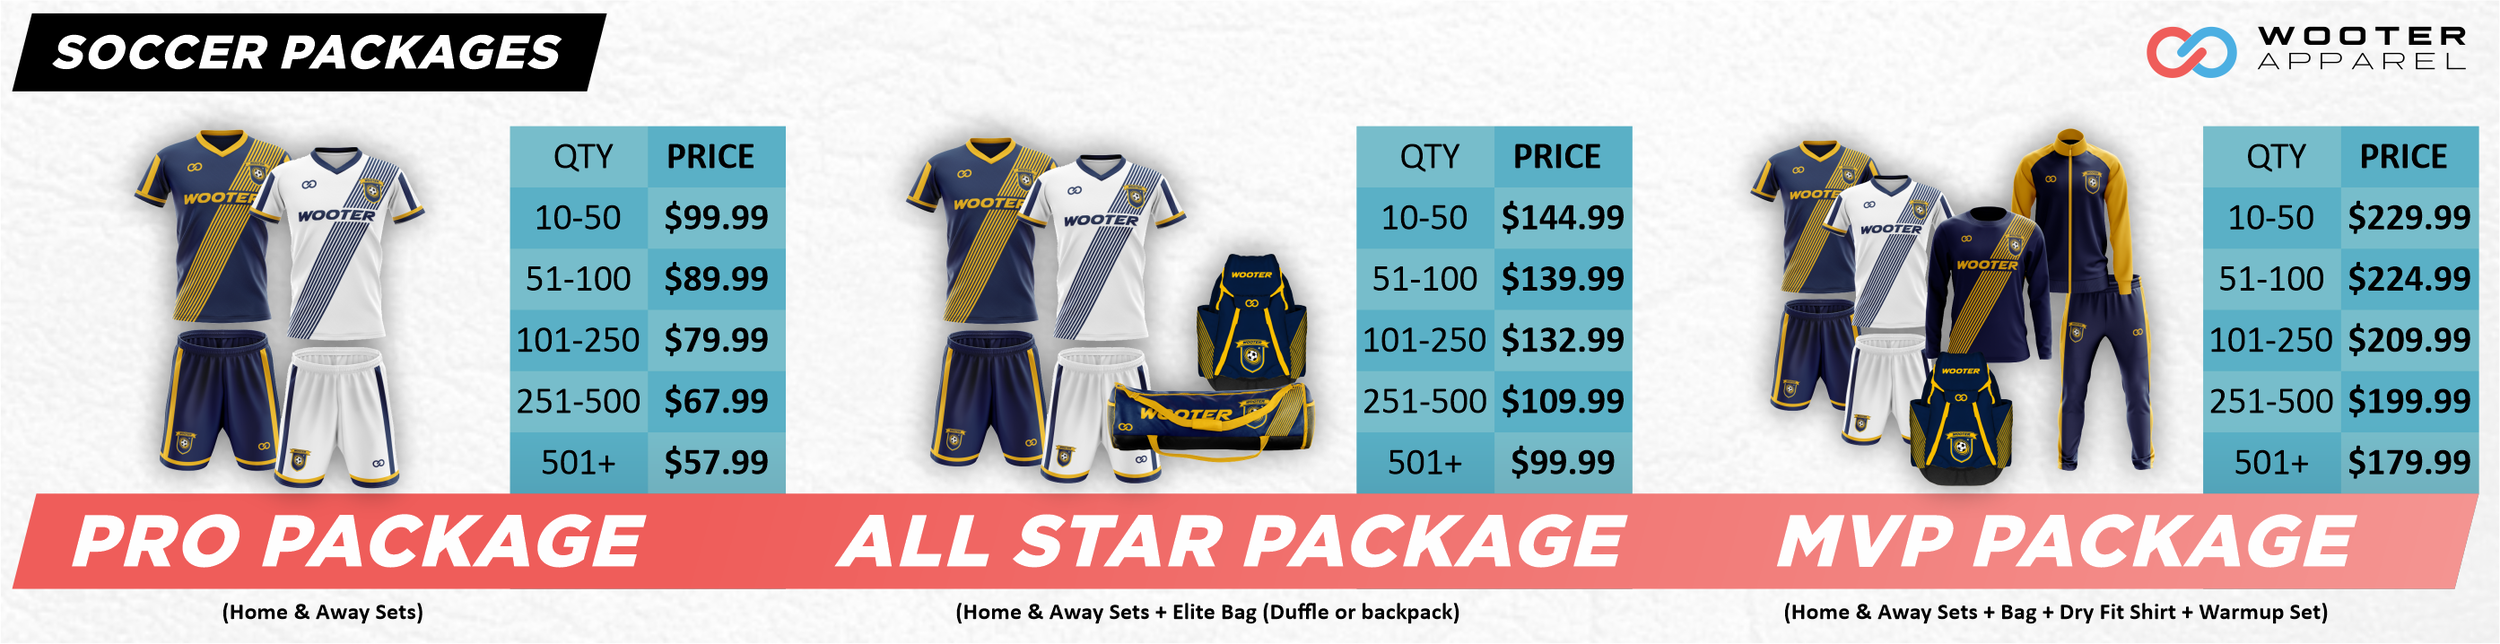 Wooter Apparel Soccer Kits, Packages, Jerseys, Uniforms